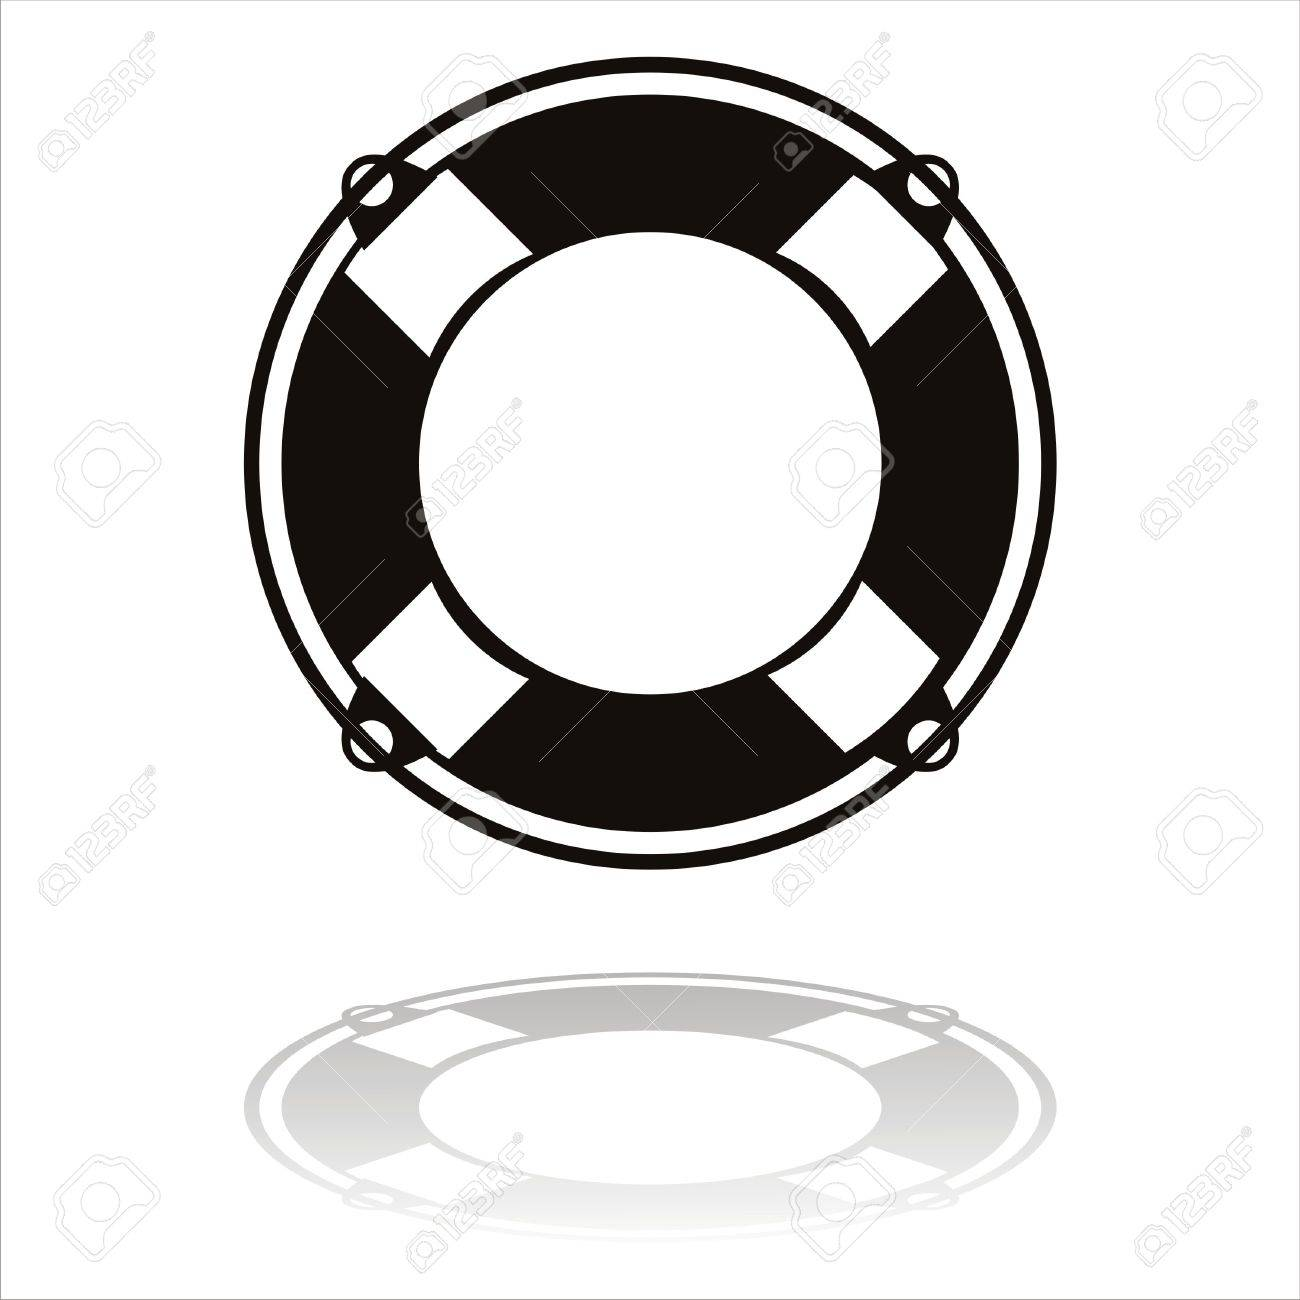 black life buoy icon isolated on white Stock Vector - 9604735